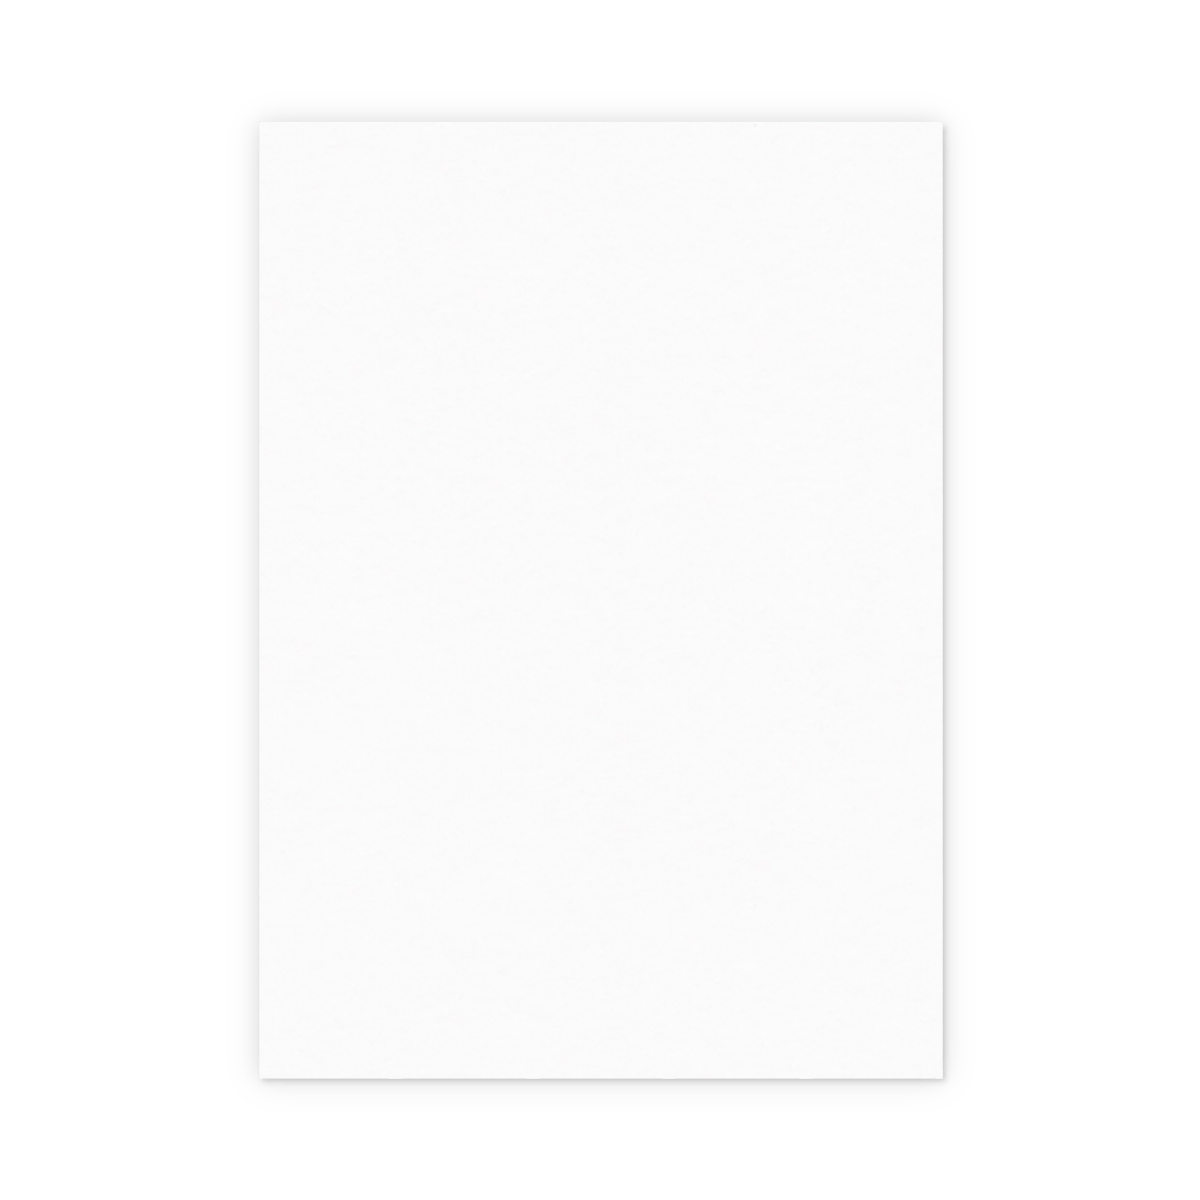 Https%3a%2f%2fwww.papier.com%2fproduct image%2f34642%2f4%2fshapes colours two 8661 arriere 1519908896.png?ixlib=rb 1.1